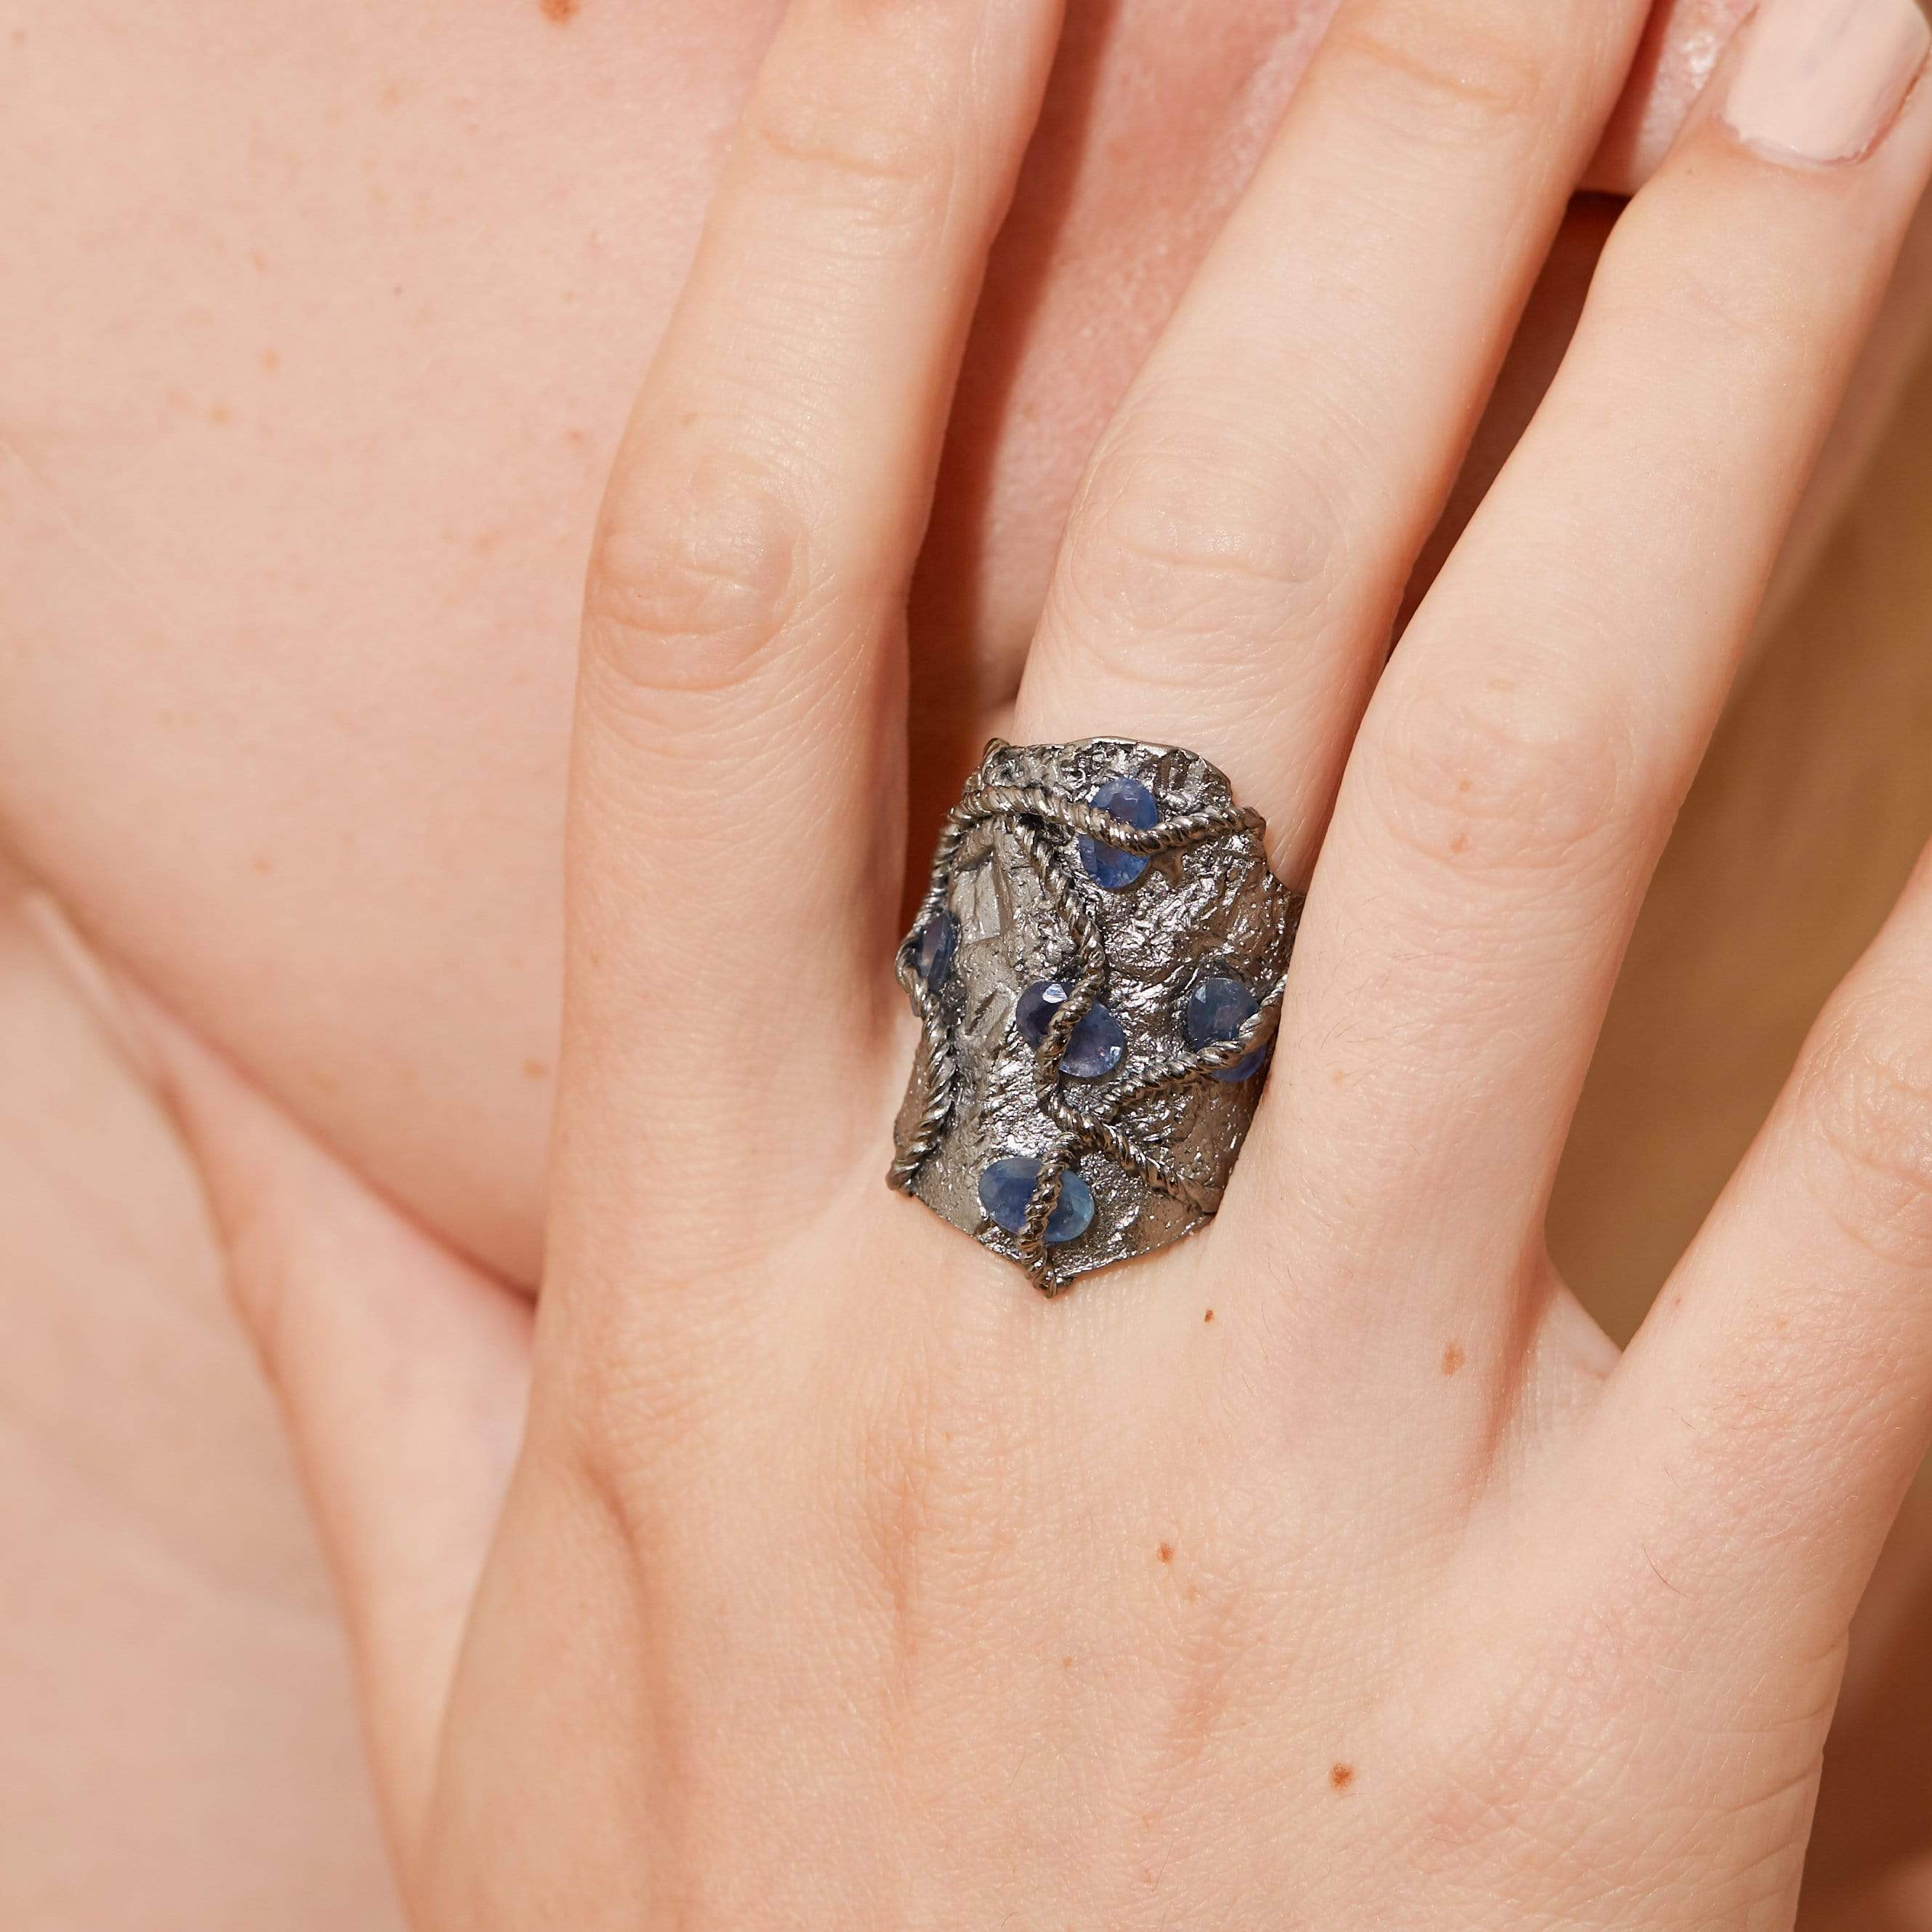 Merian Ring, gray, Handmade, Rhodium, Sapphire, spo-disabled, StoneColor:Blue, Style:Everyday, Type:StoneCandyWired Ring